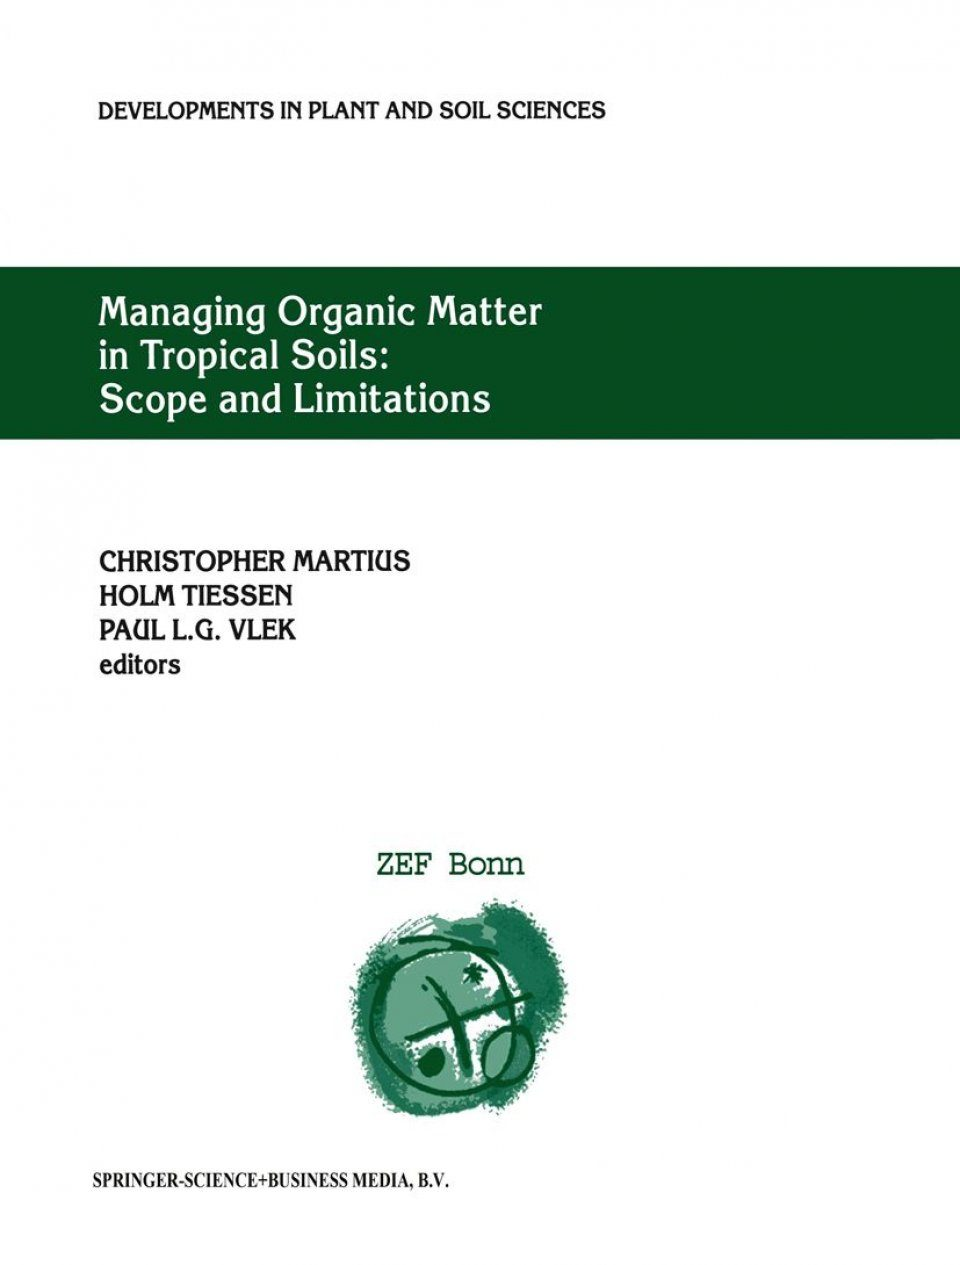 Managing Organic Matter in Tropical Soils